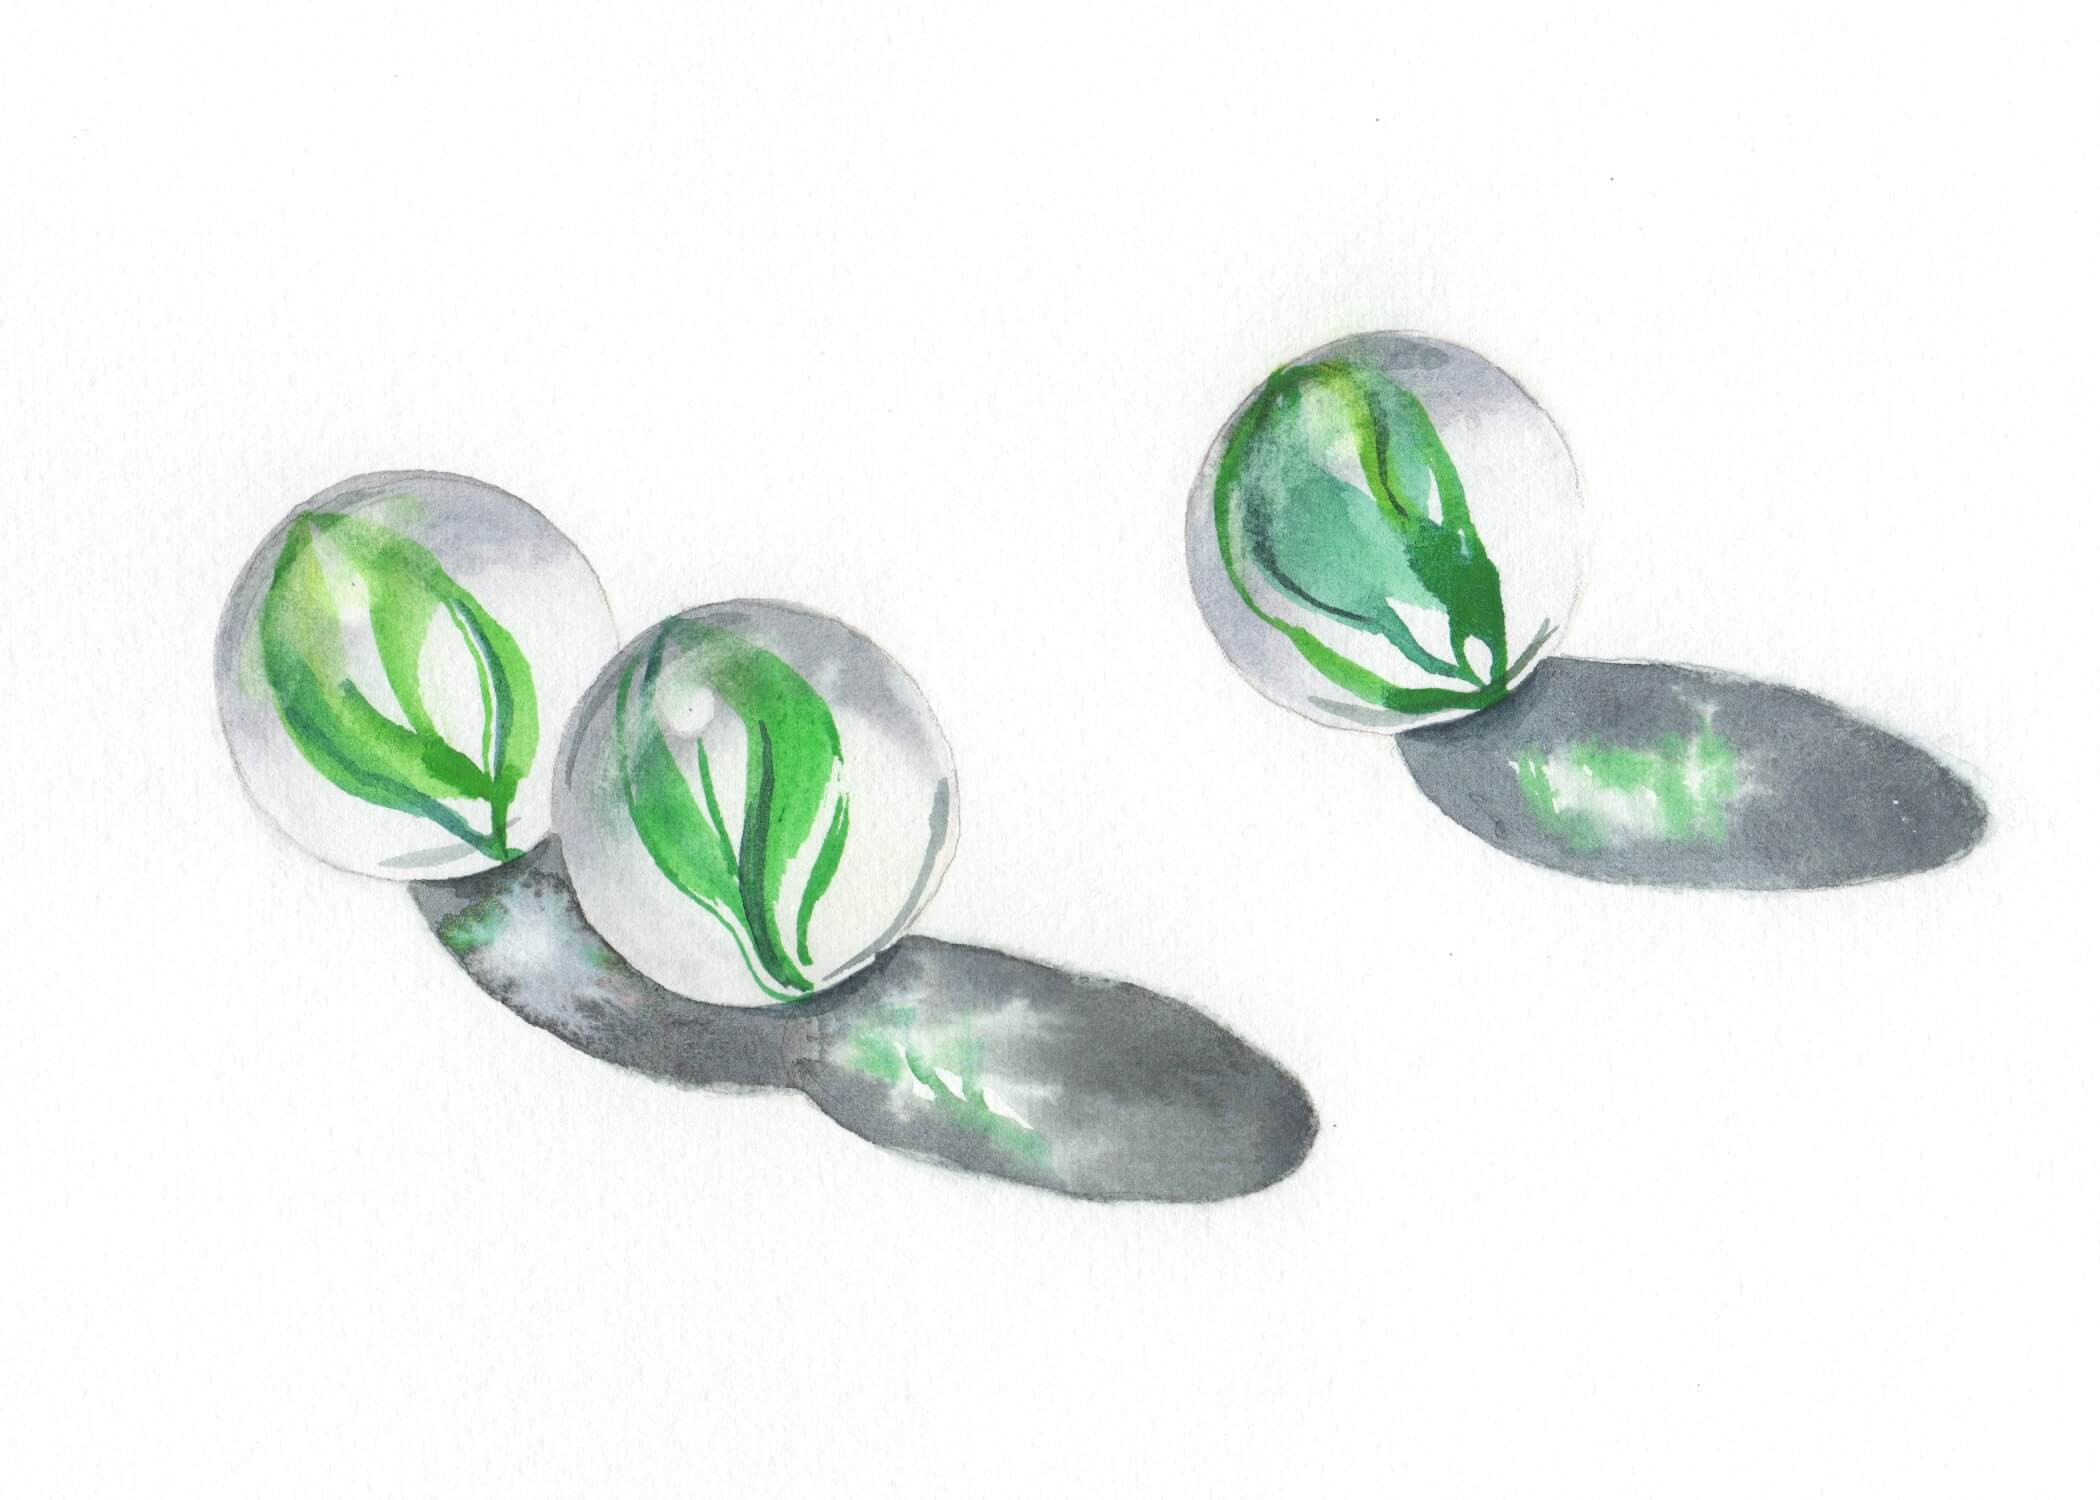 watercolor painting of three marbles in the sunlight